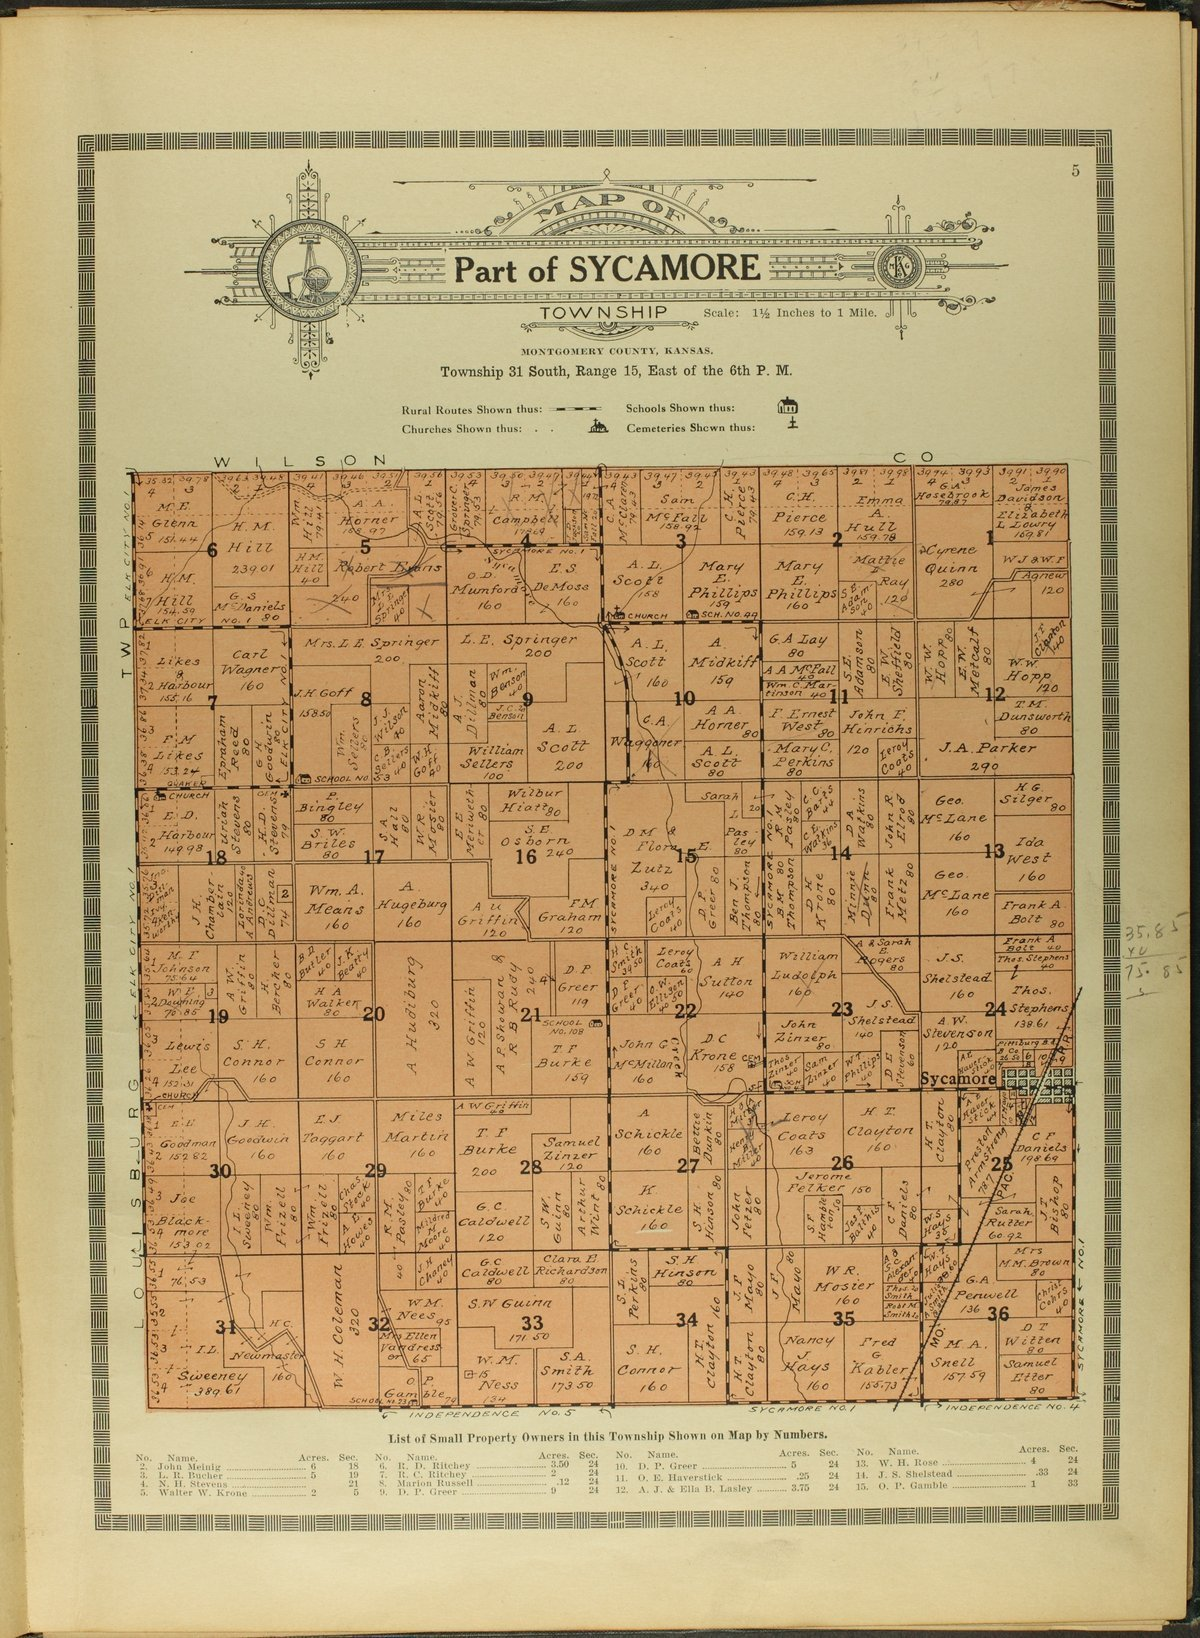 Atlas and plat book of Montgomery County, Kansas - 5